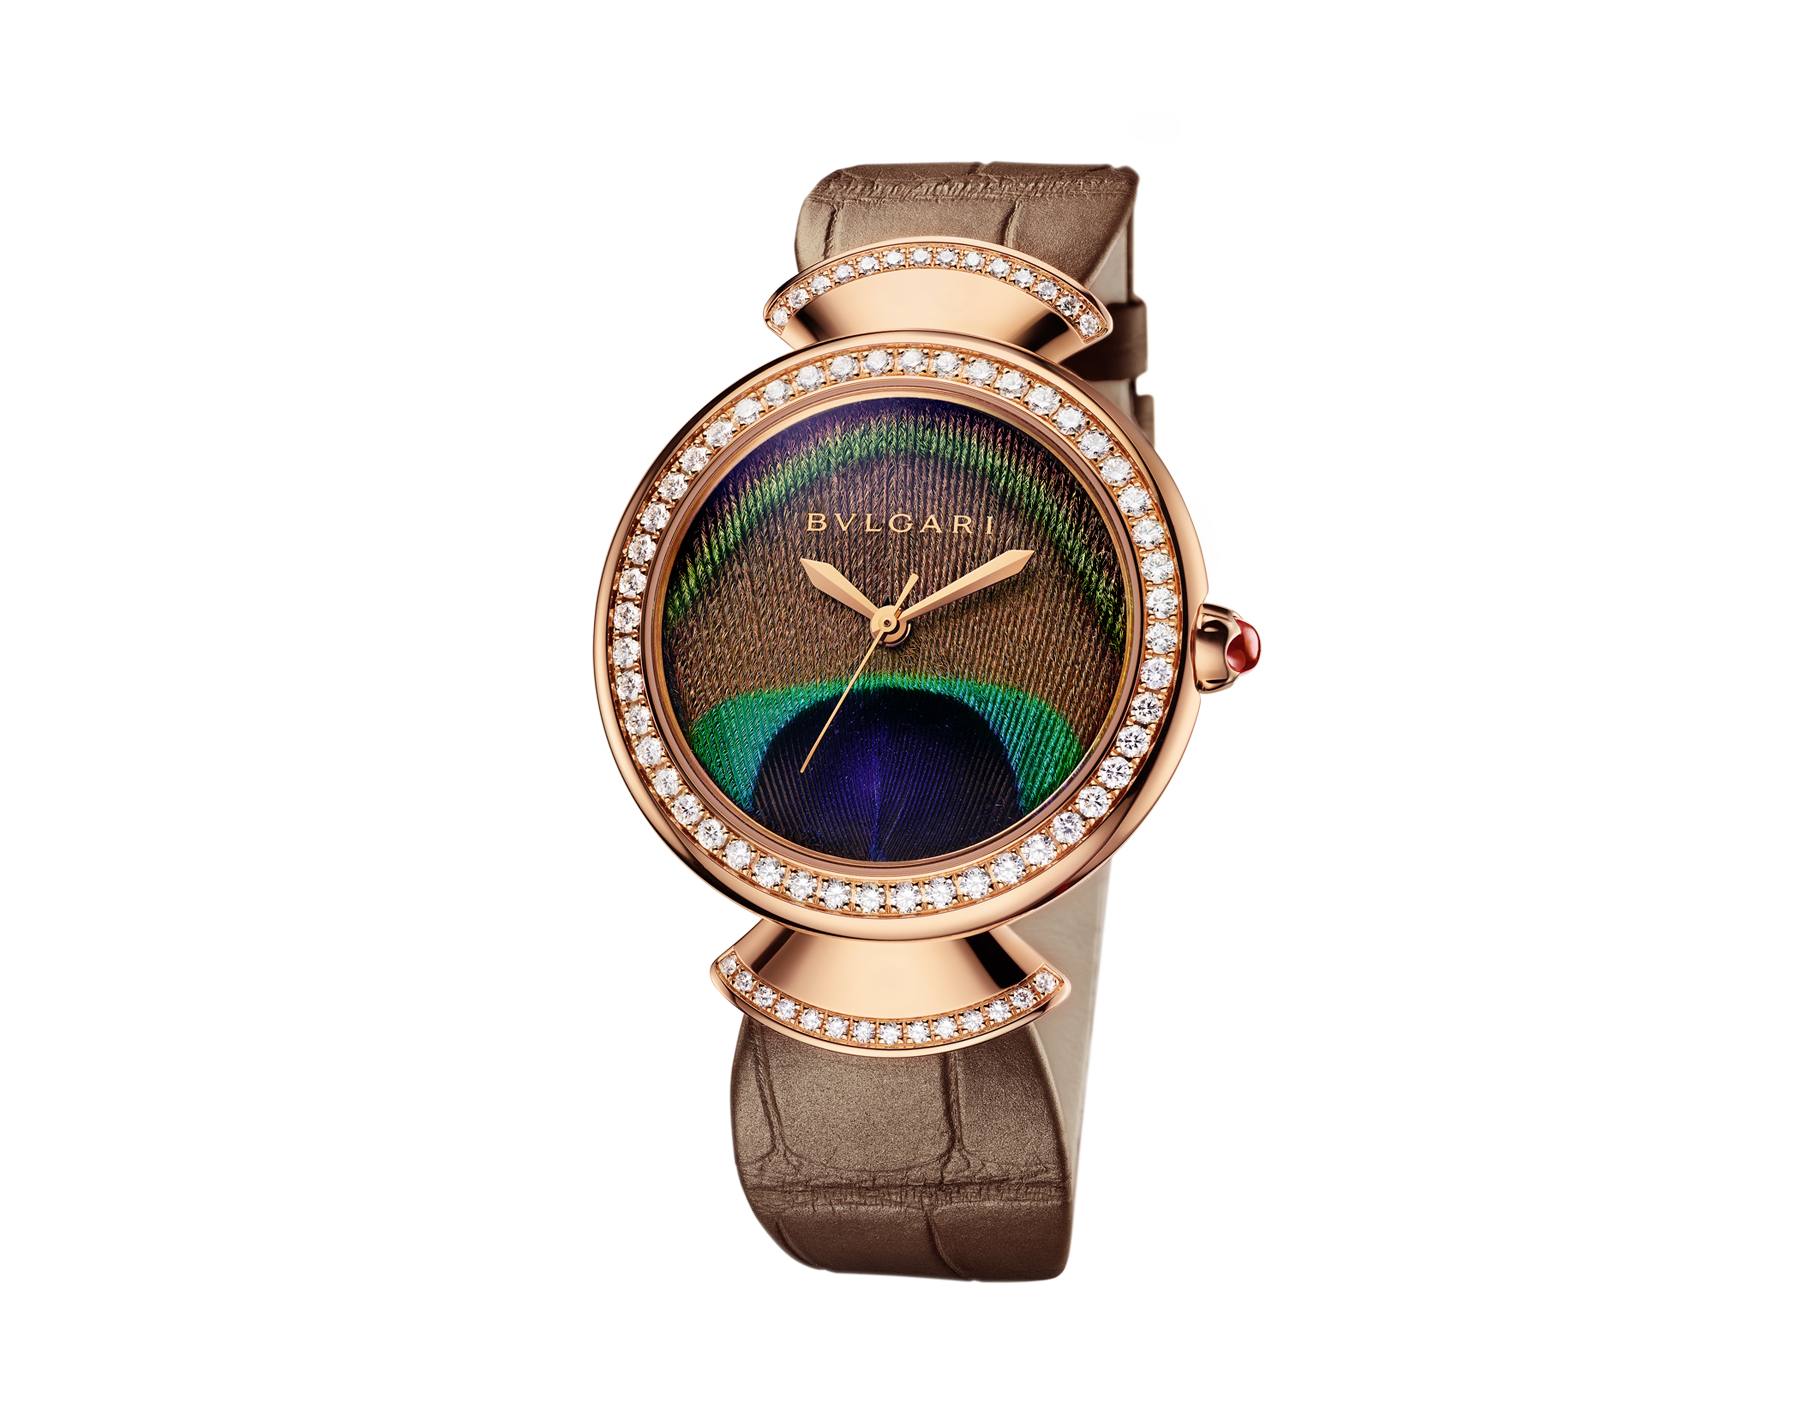 DIVAS' DREAM watch with in-house manufacture mechanical movement, automatic winding, 18 kt rose gold case, 18 kt rose gold bezel and fan-shaped links both set with brilliant-cut diamonds, natural peacock feather dial and shiny beige alligator strap 103139 image 2